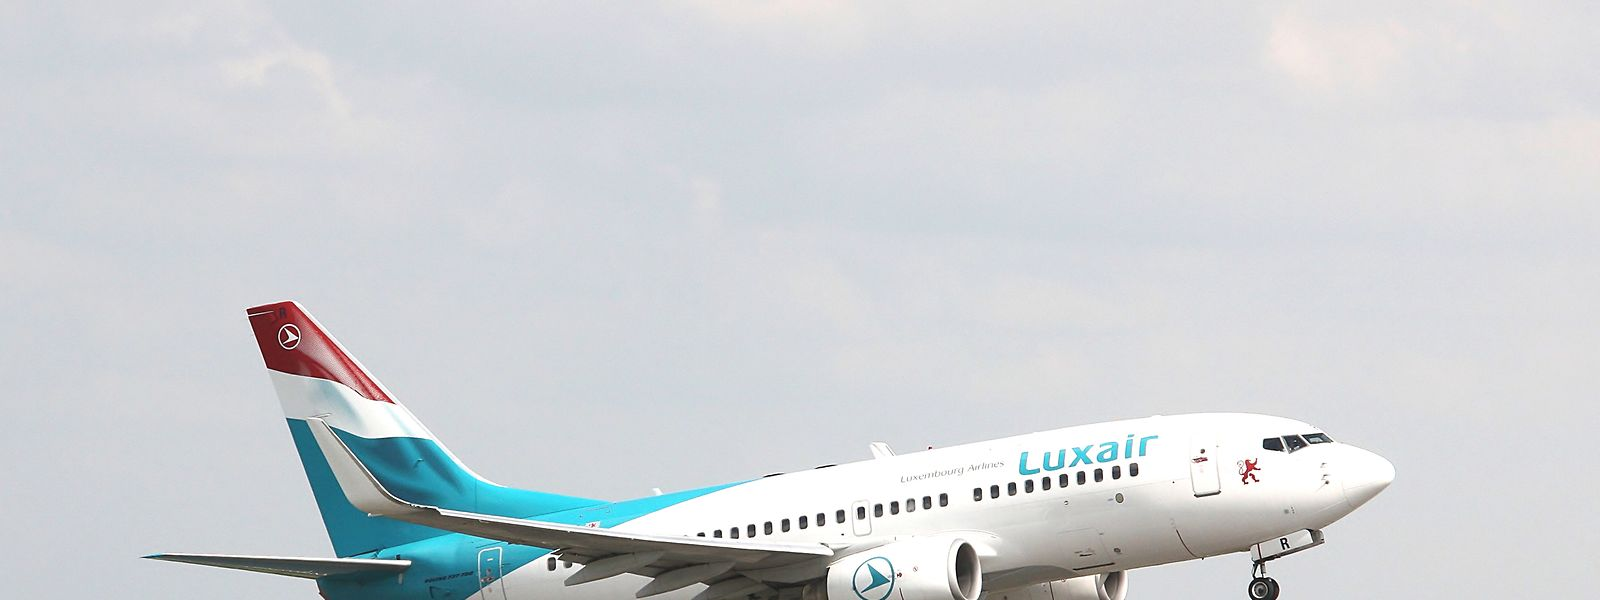 Luxair aircraft